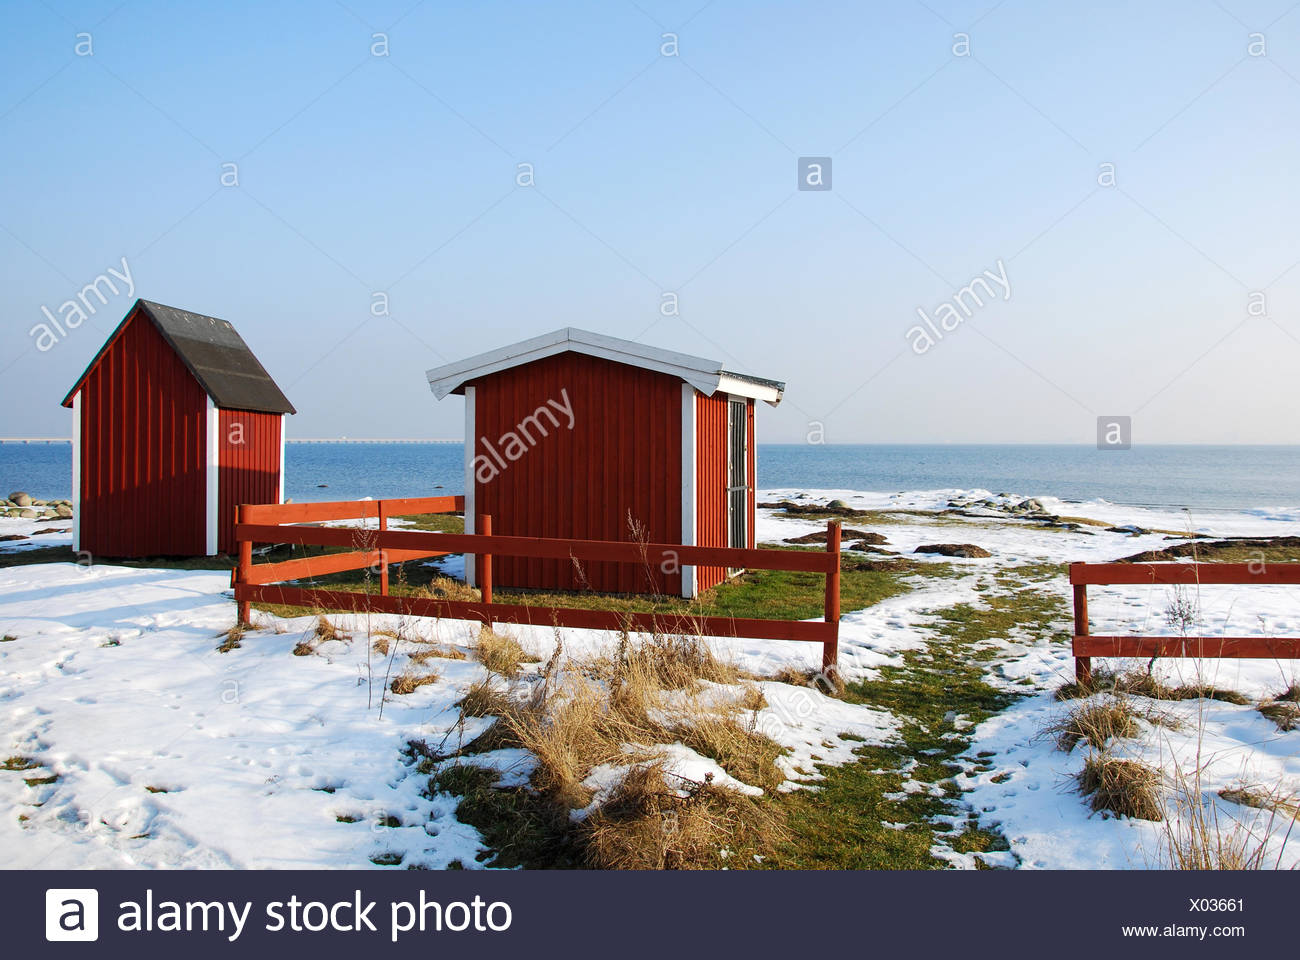 Fishermens Old Red Cabins At The Coast Of Baltic Sea In